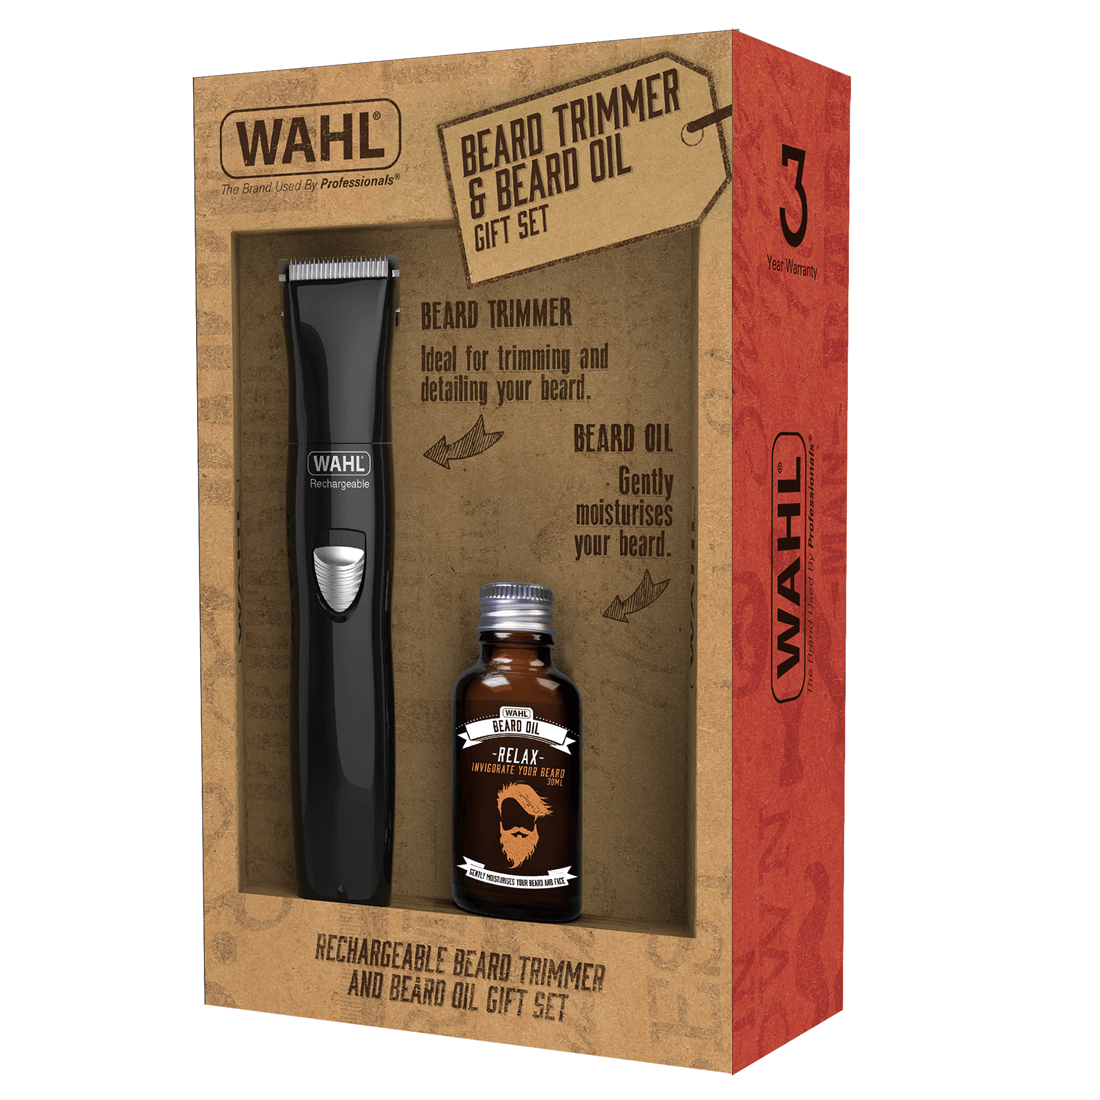 Wahl Beard Trimmer Set